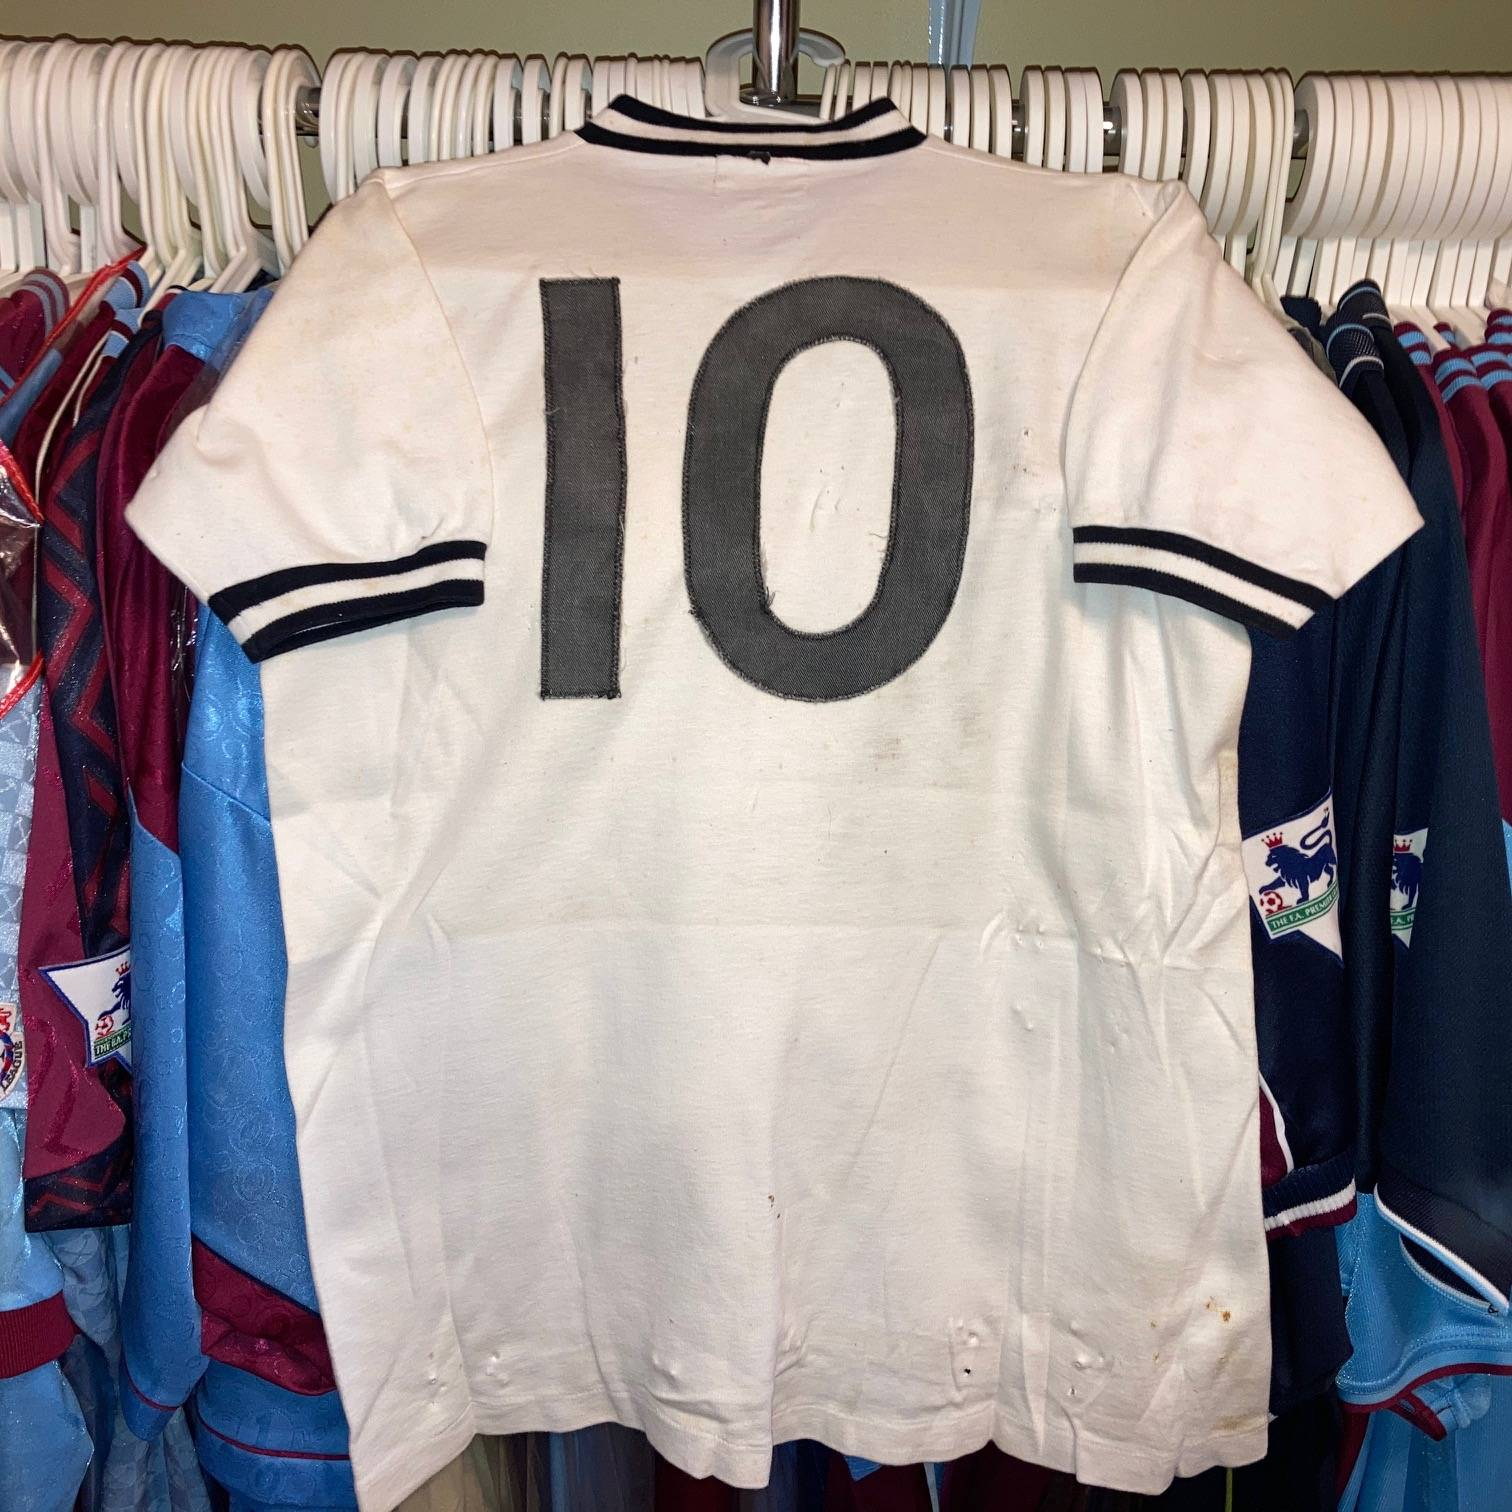 John Sissons worn and signed 1961 England schoolboy shirt